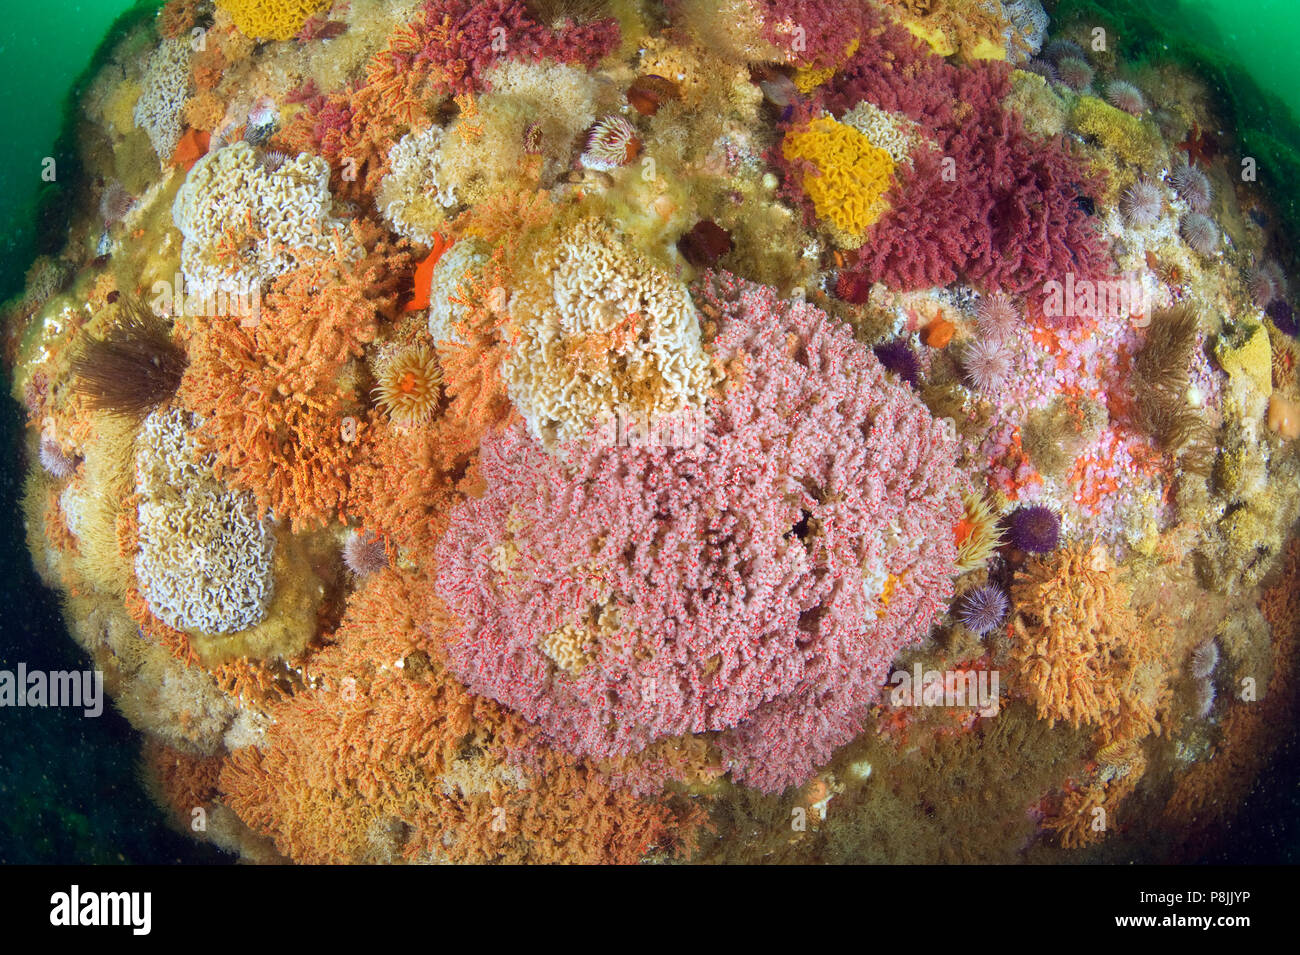 Several species of cold water corals in False Bay - Stock Image